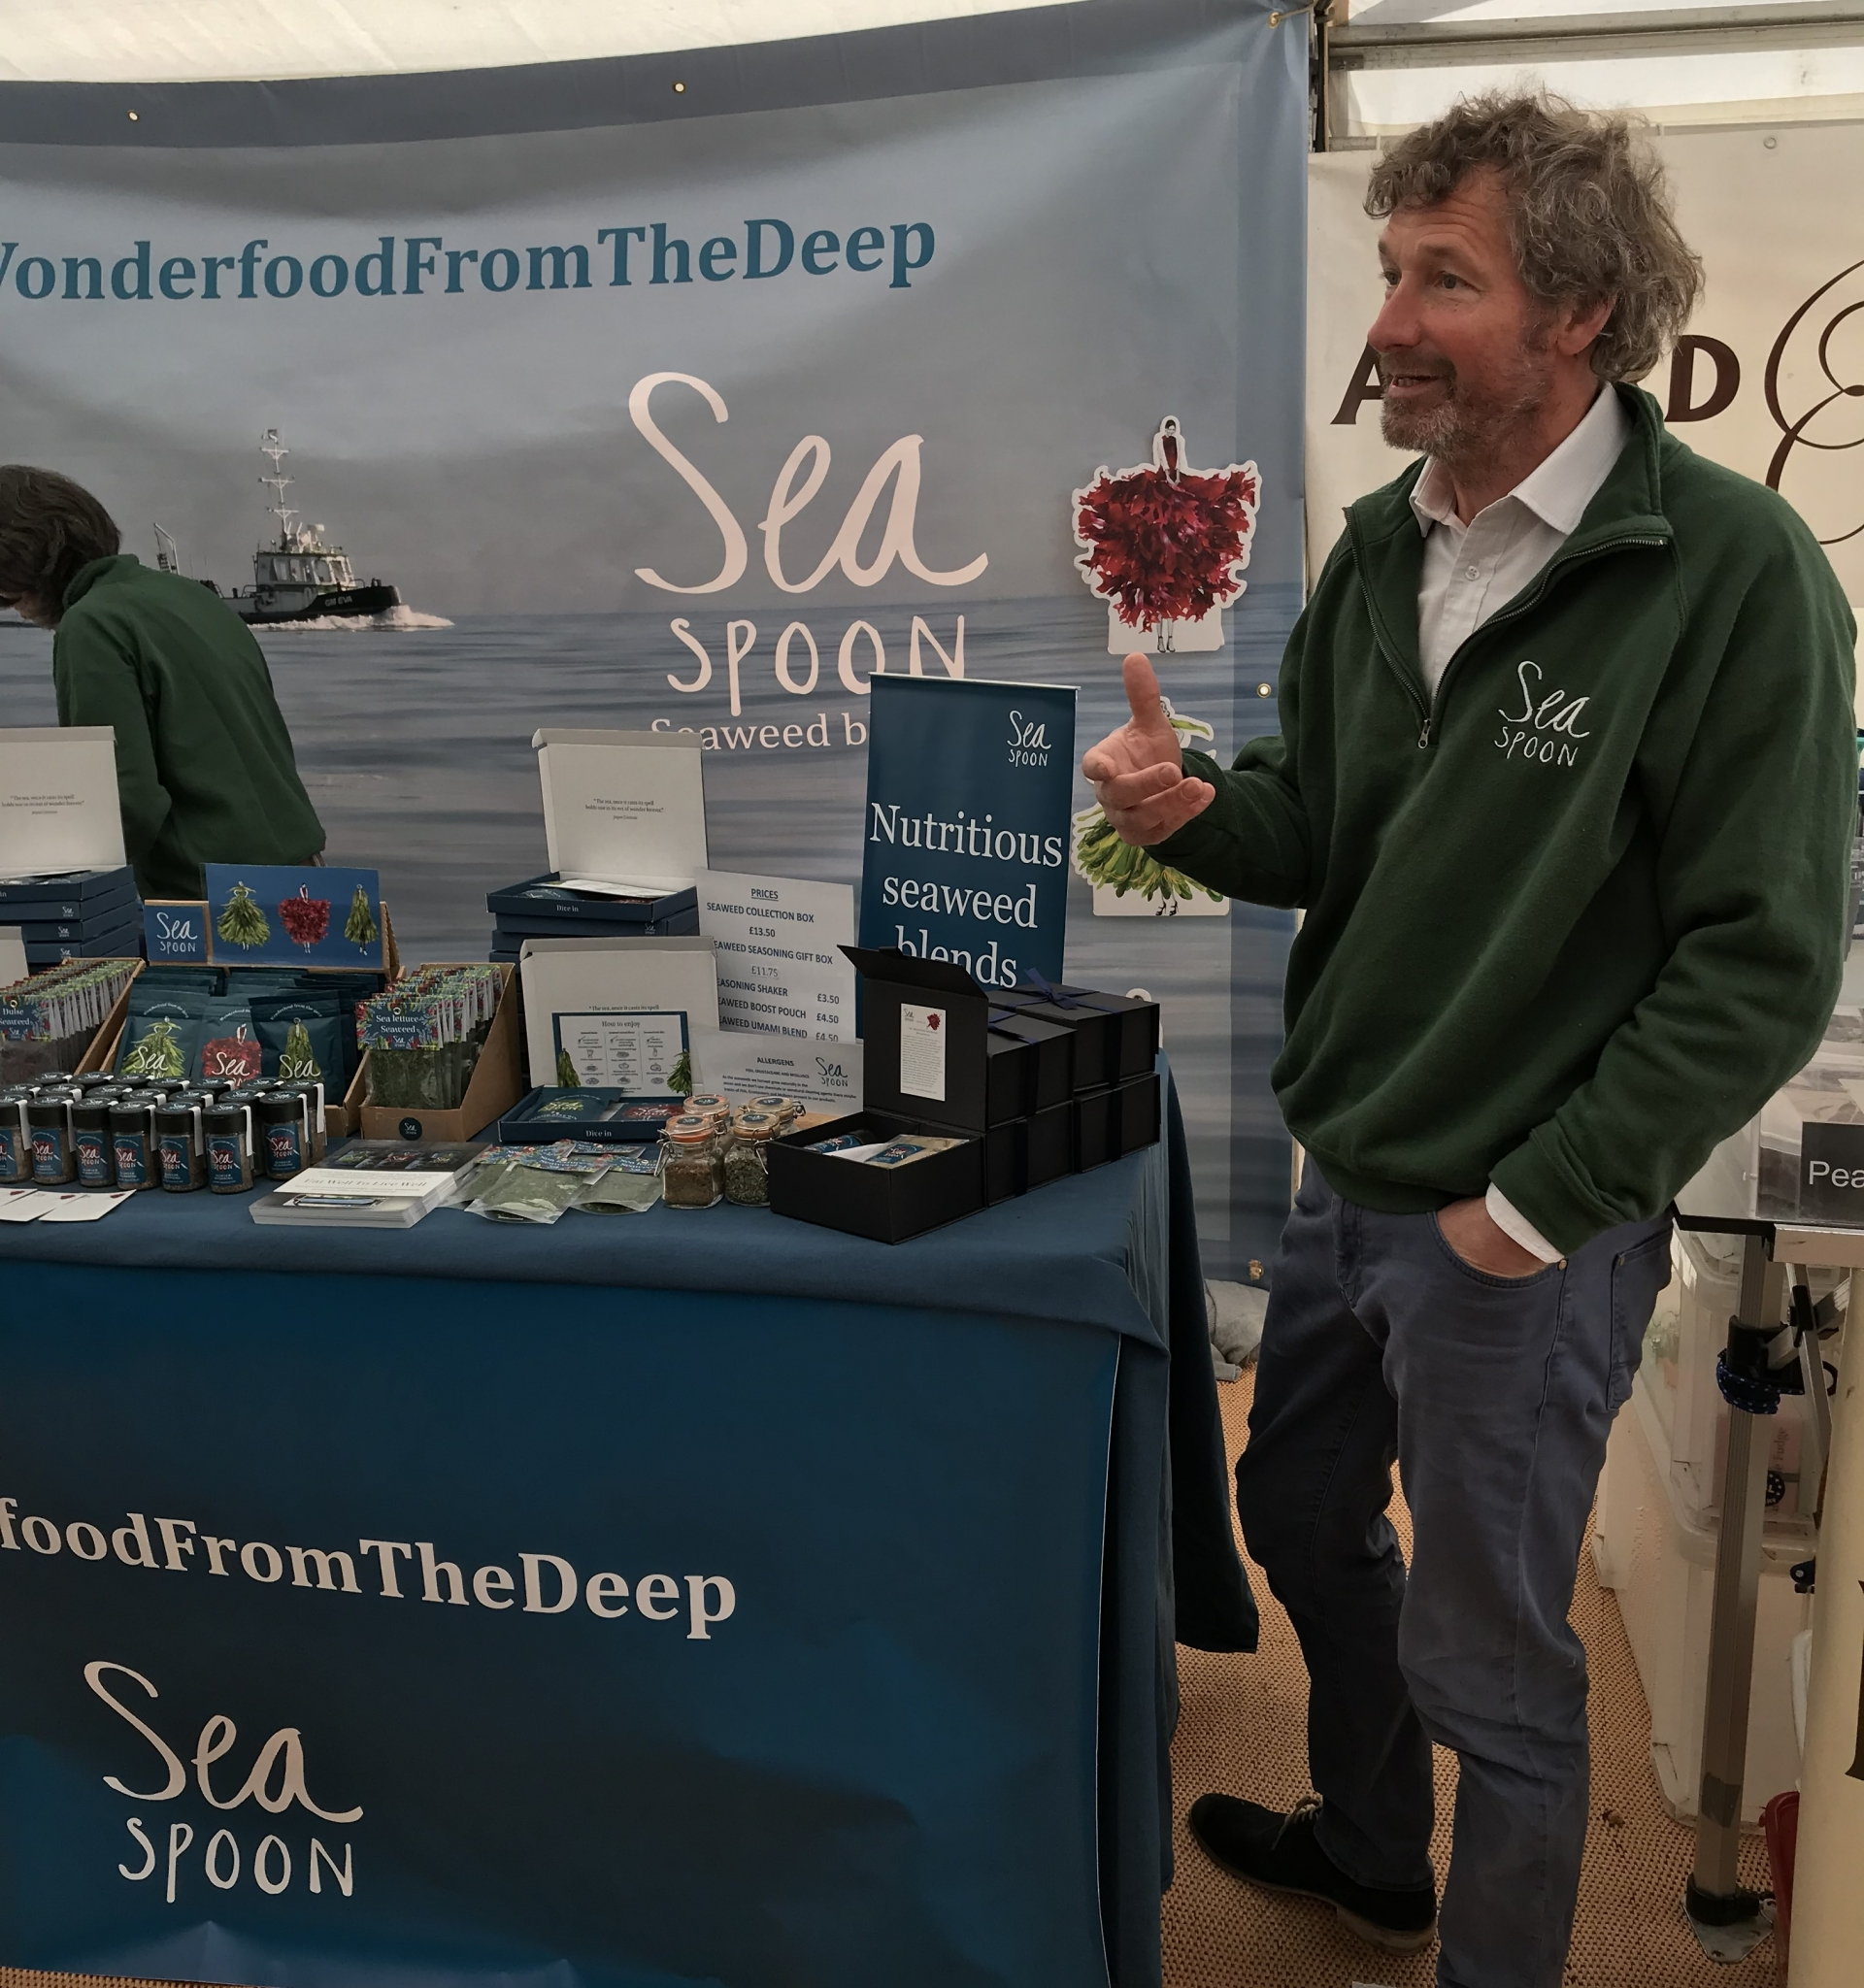 Exeter Food Festival 2019 in pictures, Exploring Exeter 2019